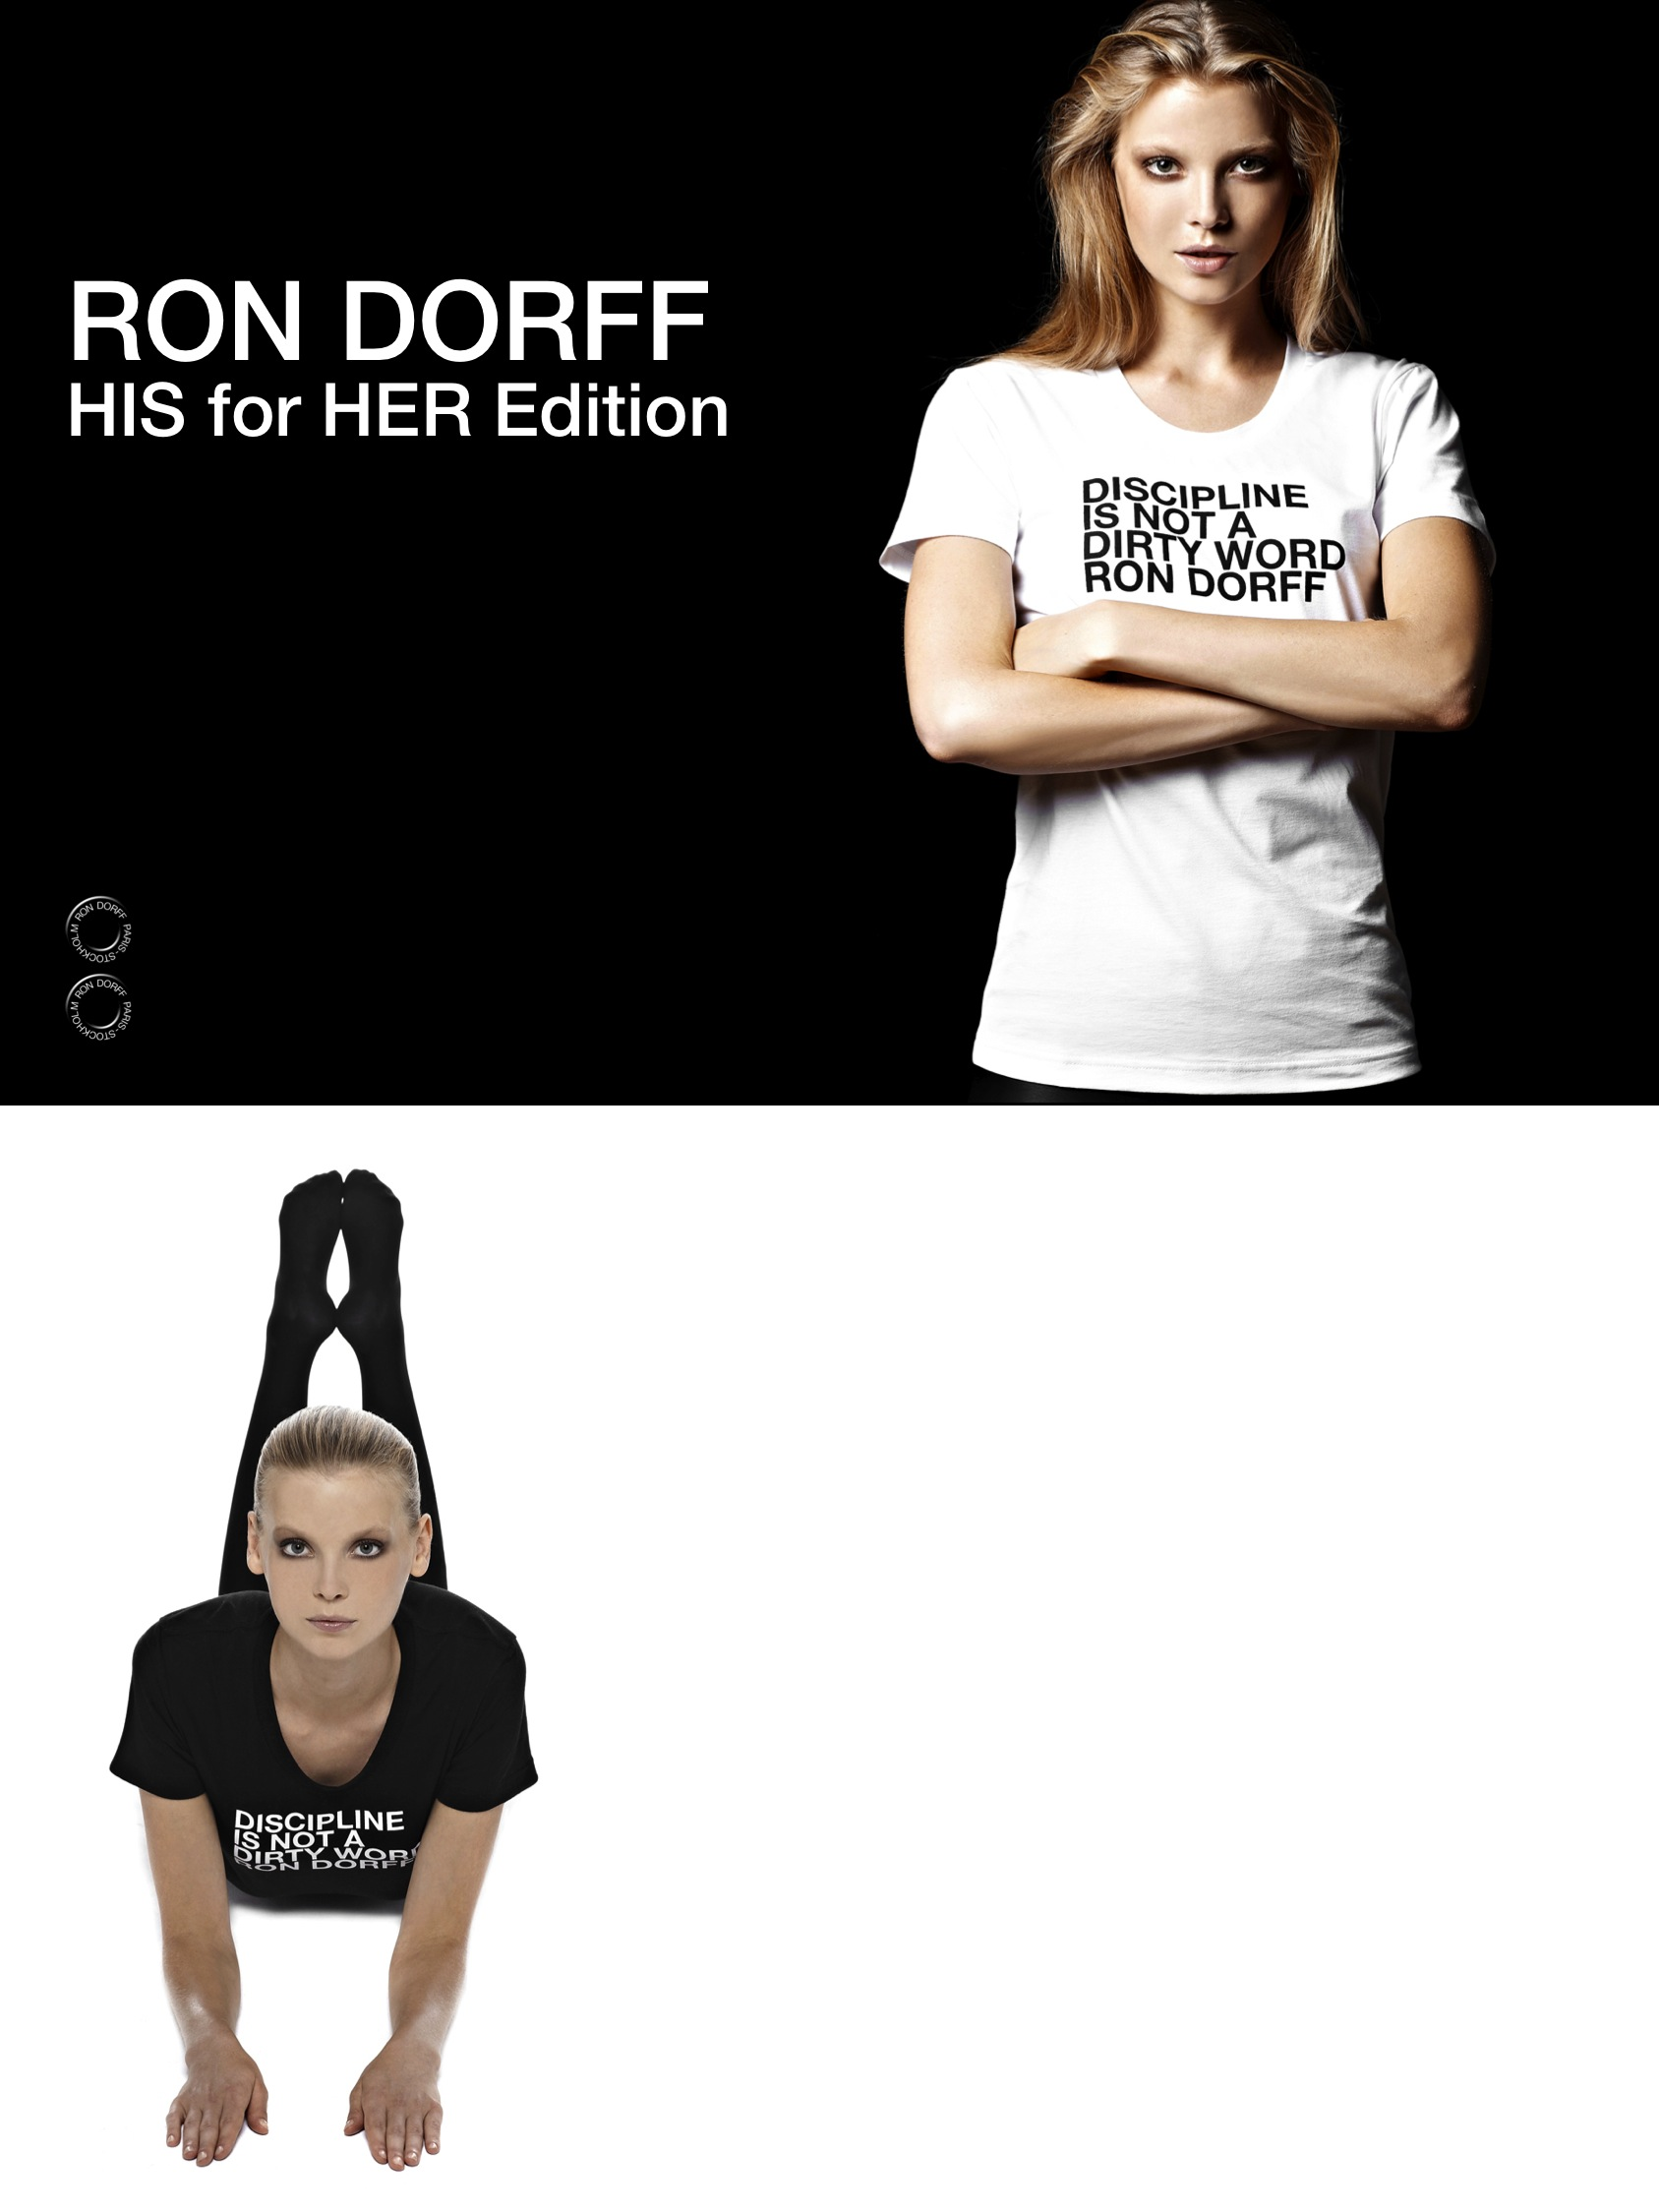 RON DORFF! HIS for HER Edition! DISCIPLINE IS NOT A DIRTY WORD.